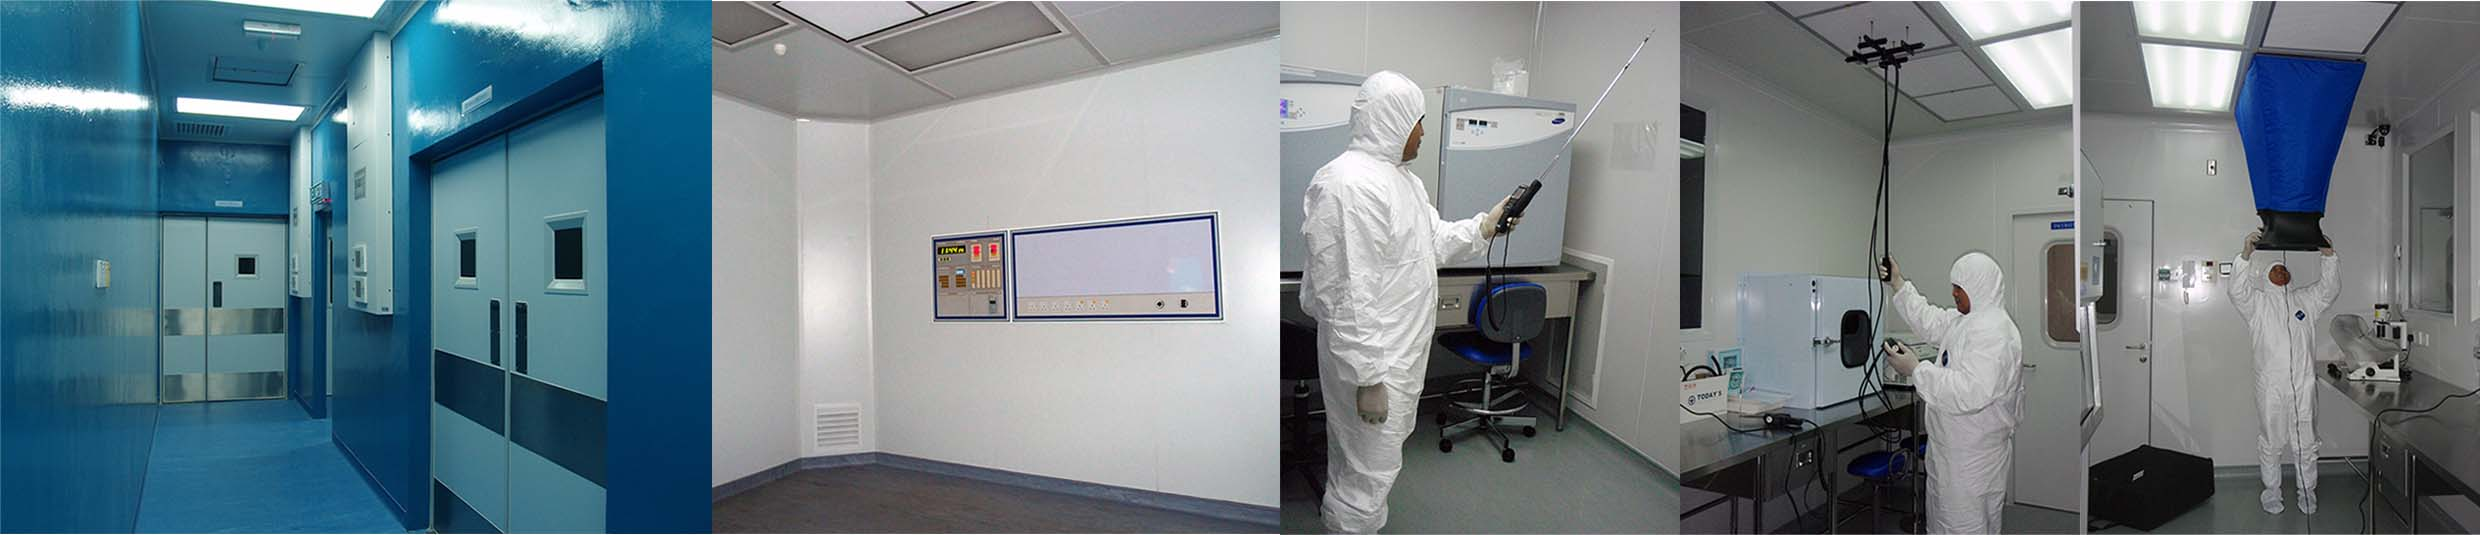 Controlled Environment Room Hospital